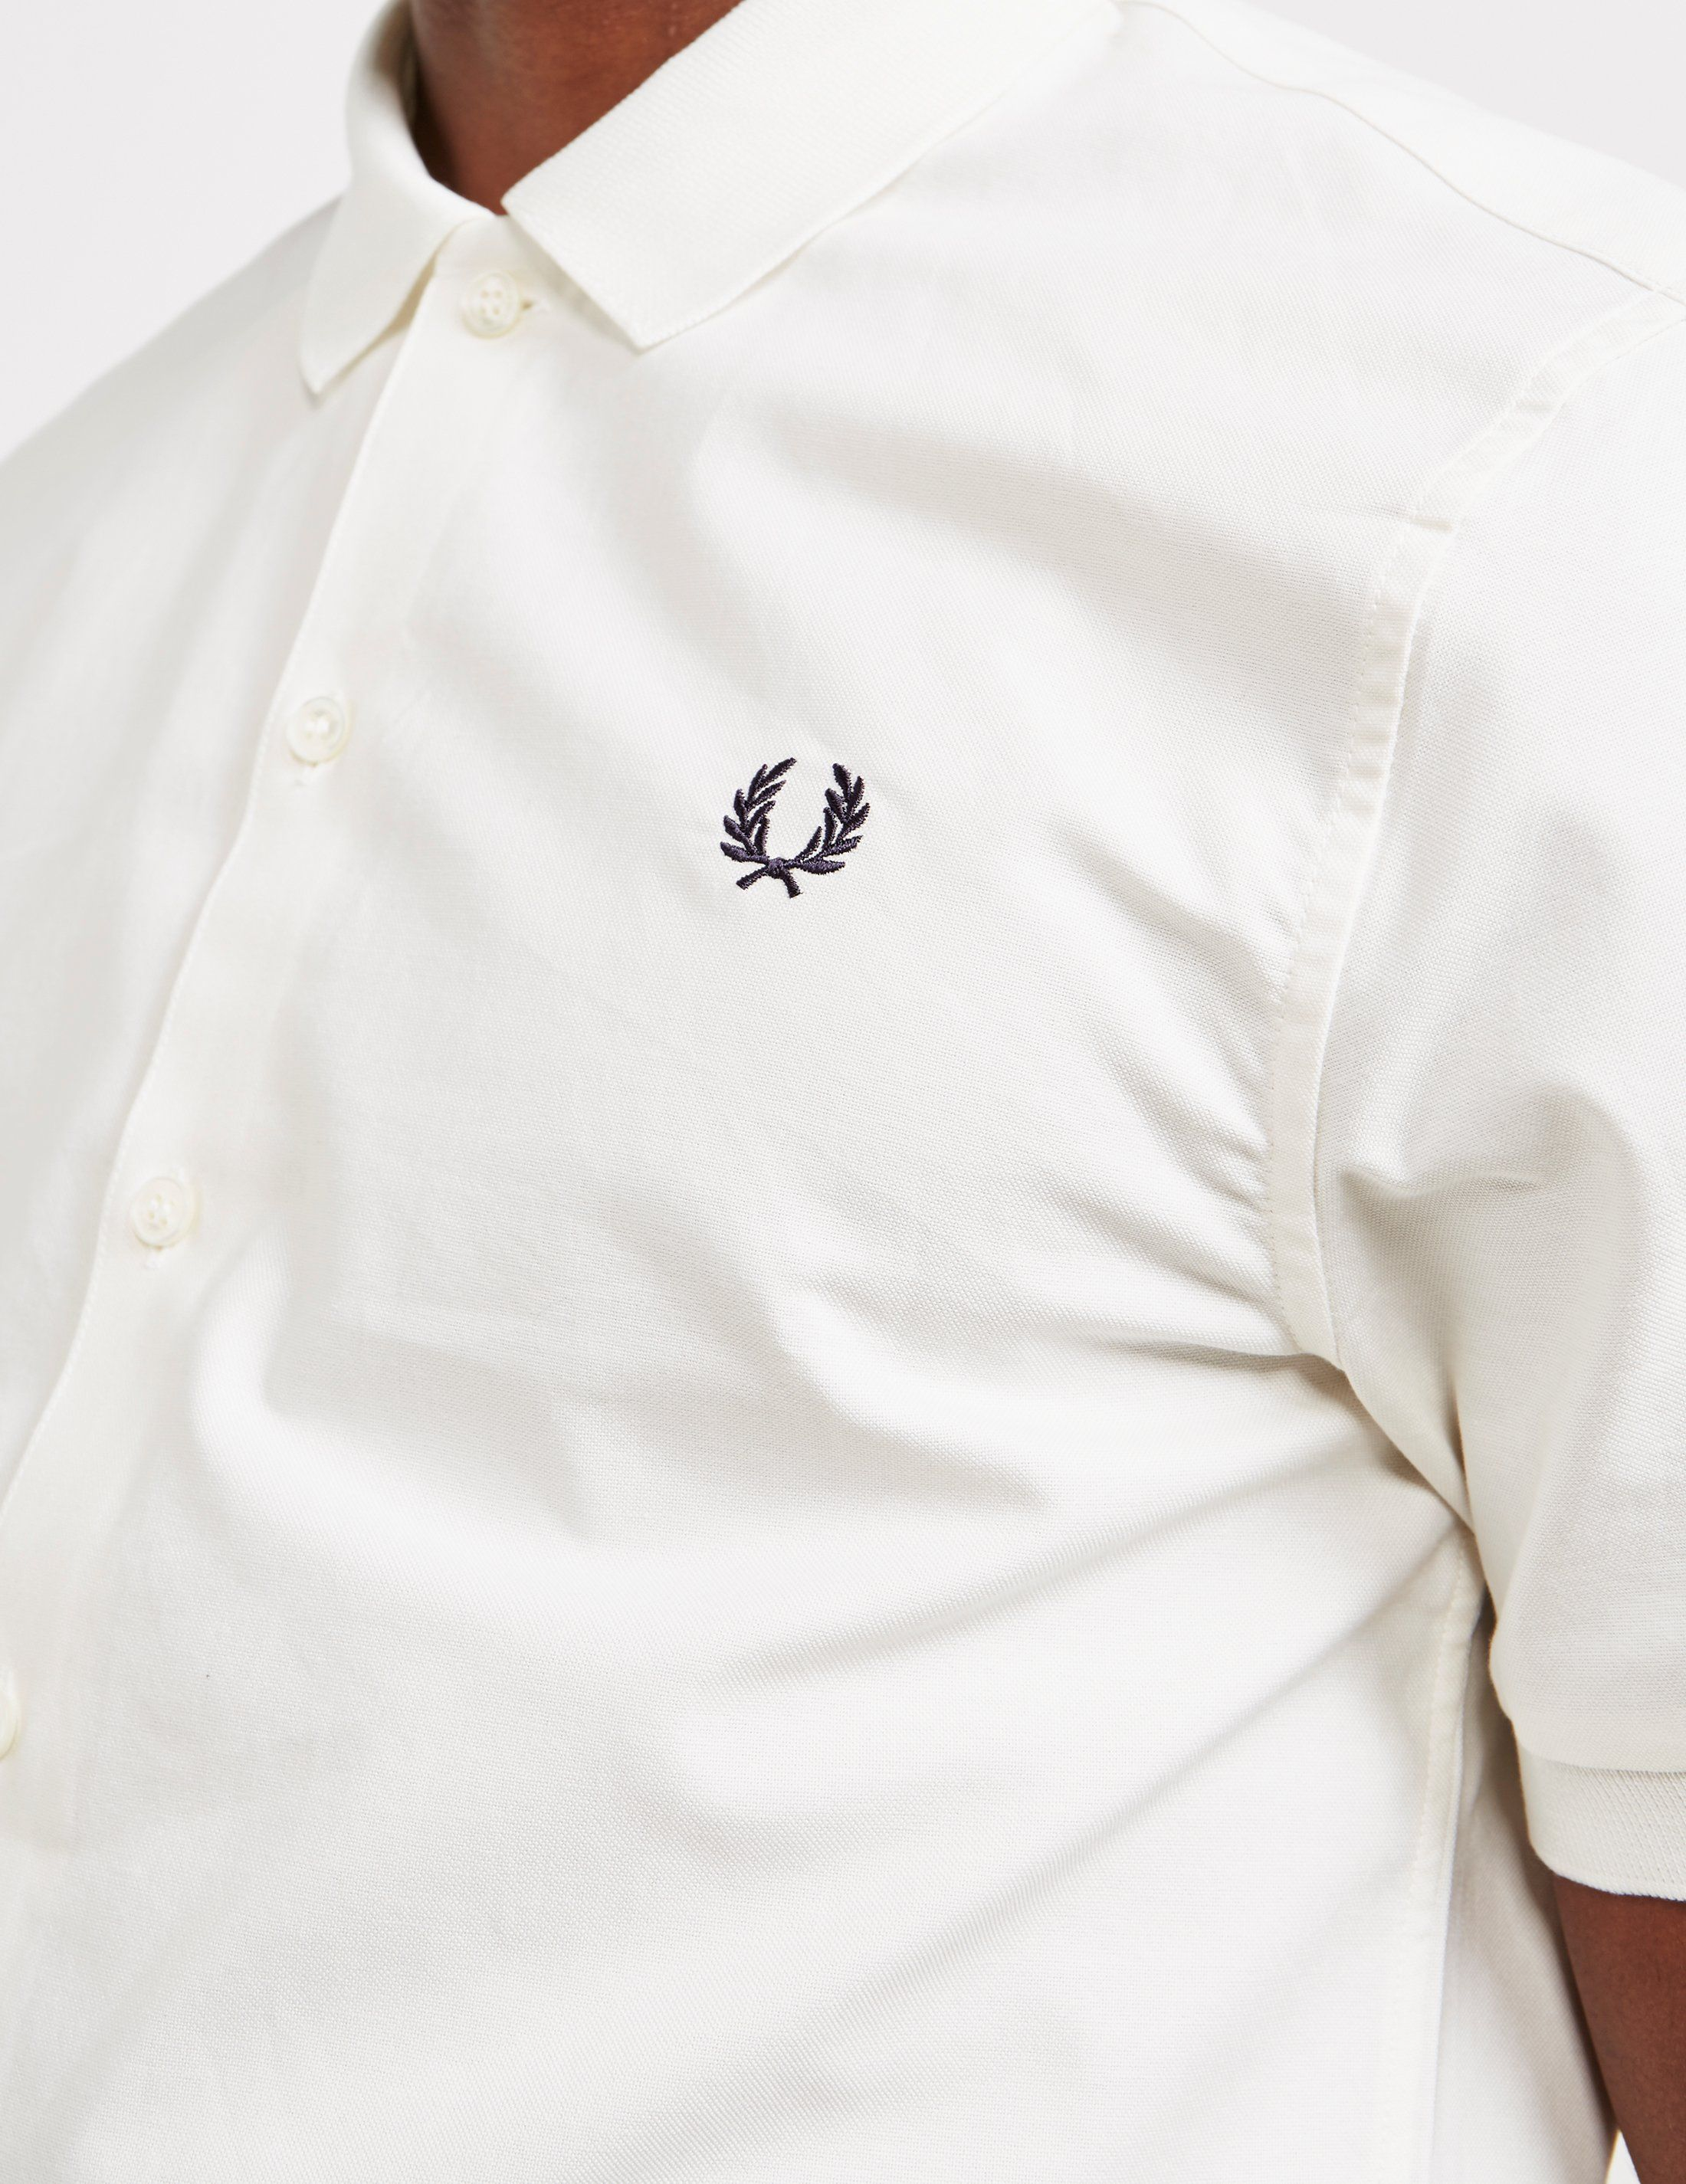 Fred Perry Knit Collar Short Sleeve Oxford Shirt